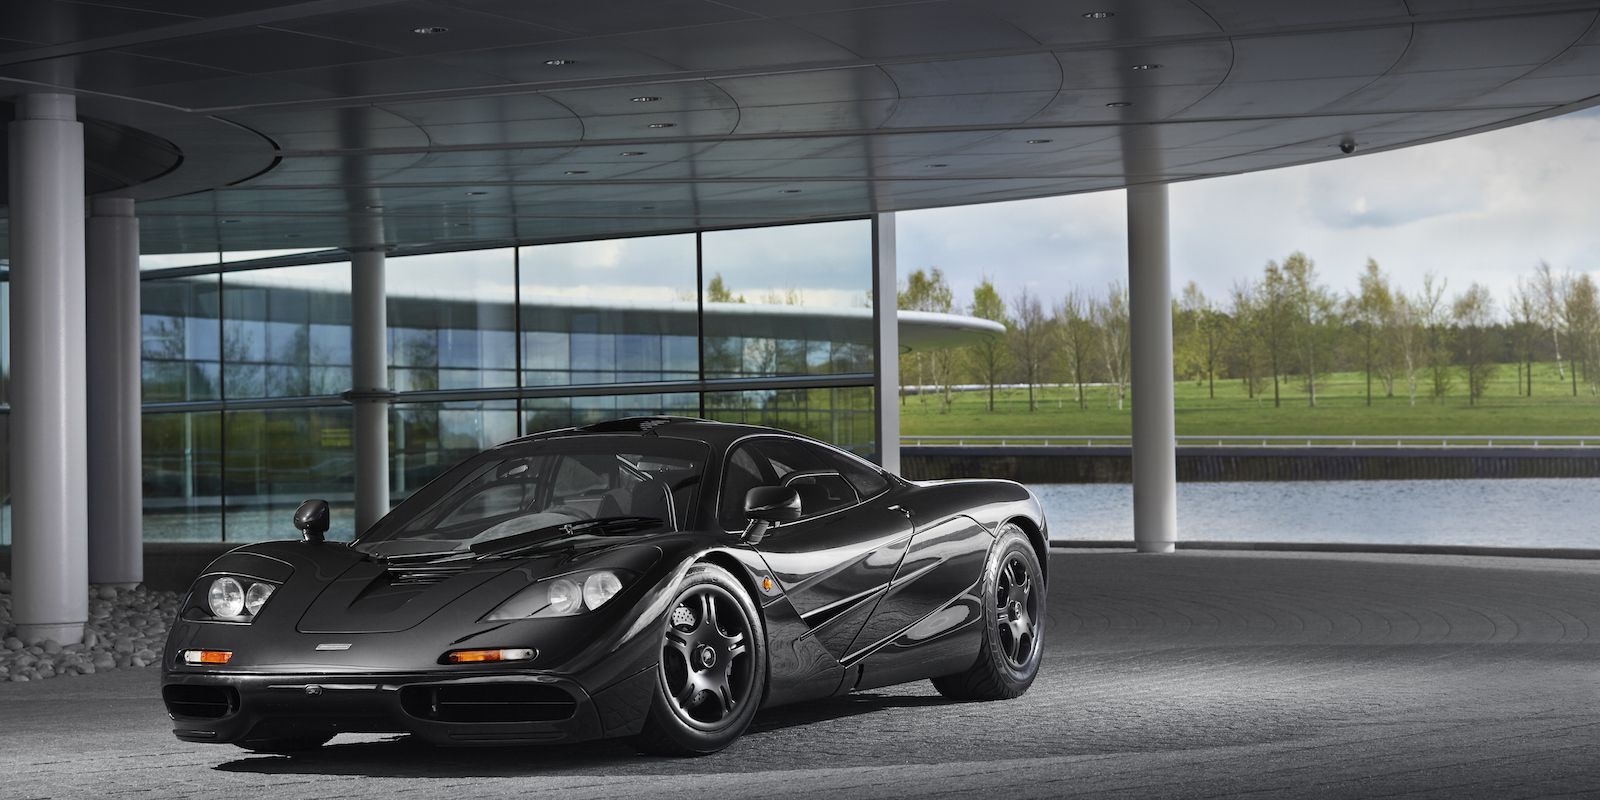 bask in the magnificence of this all-black mclaren f1